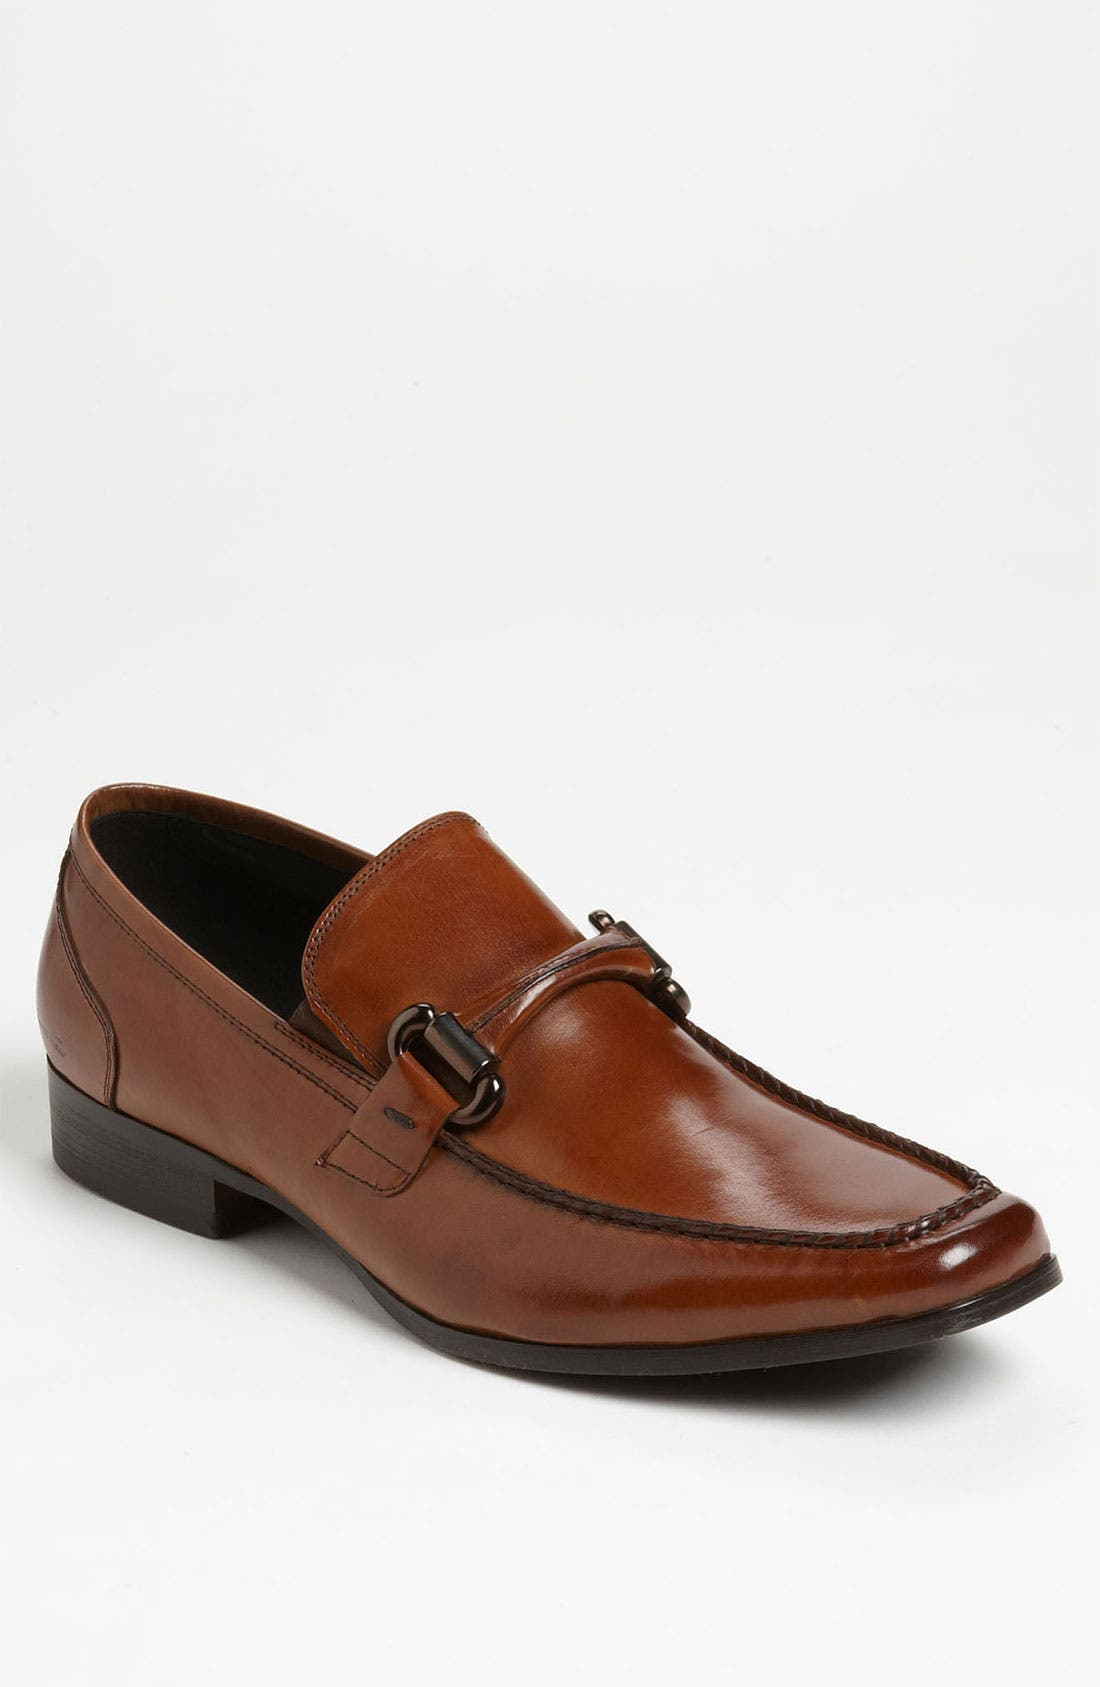 Alternate Image 1 Selected - Kenneth Cole New York 'Victory Parade' Loafer